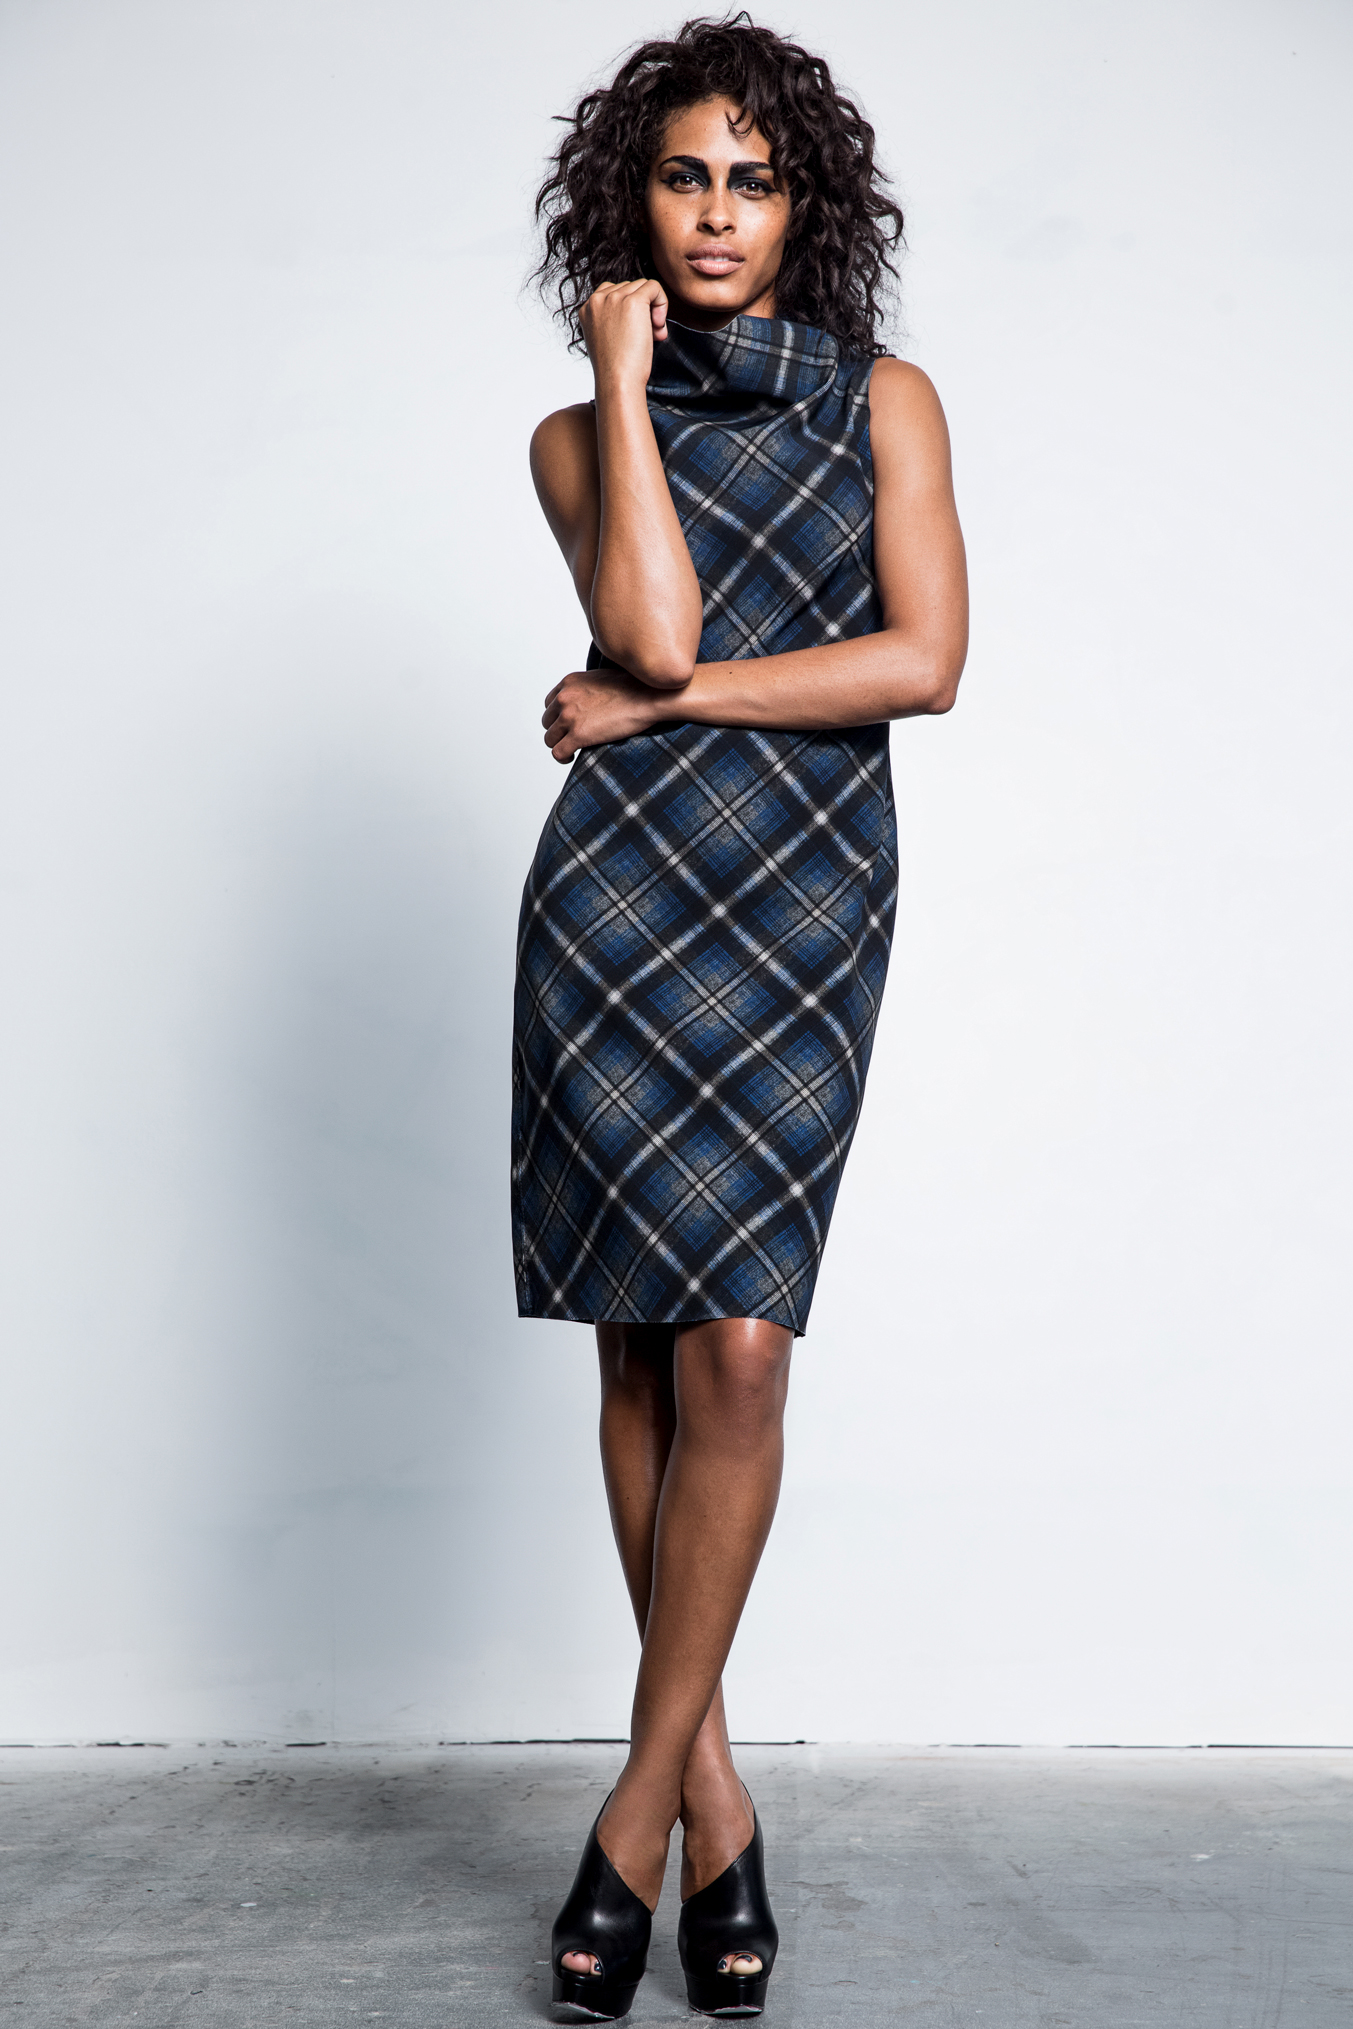 Fall-collection dress featuring M2057's first exclusive print.